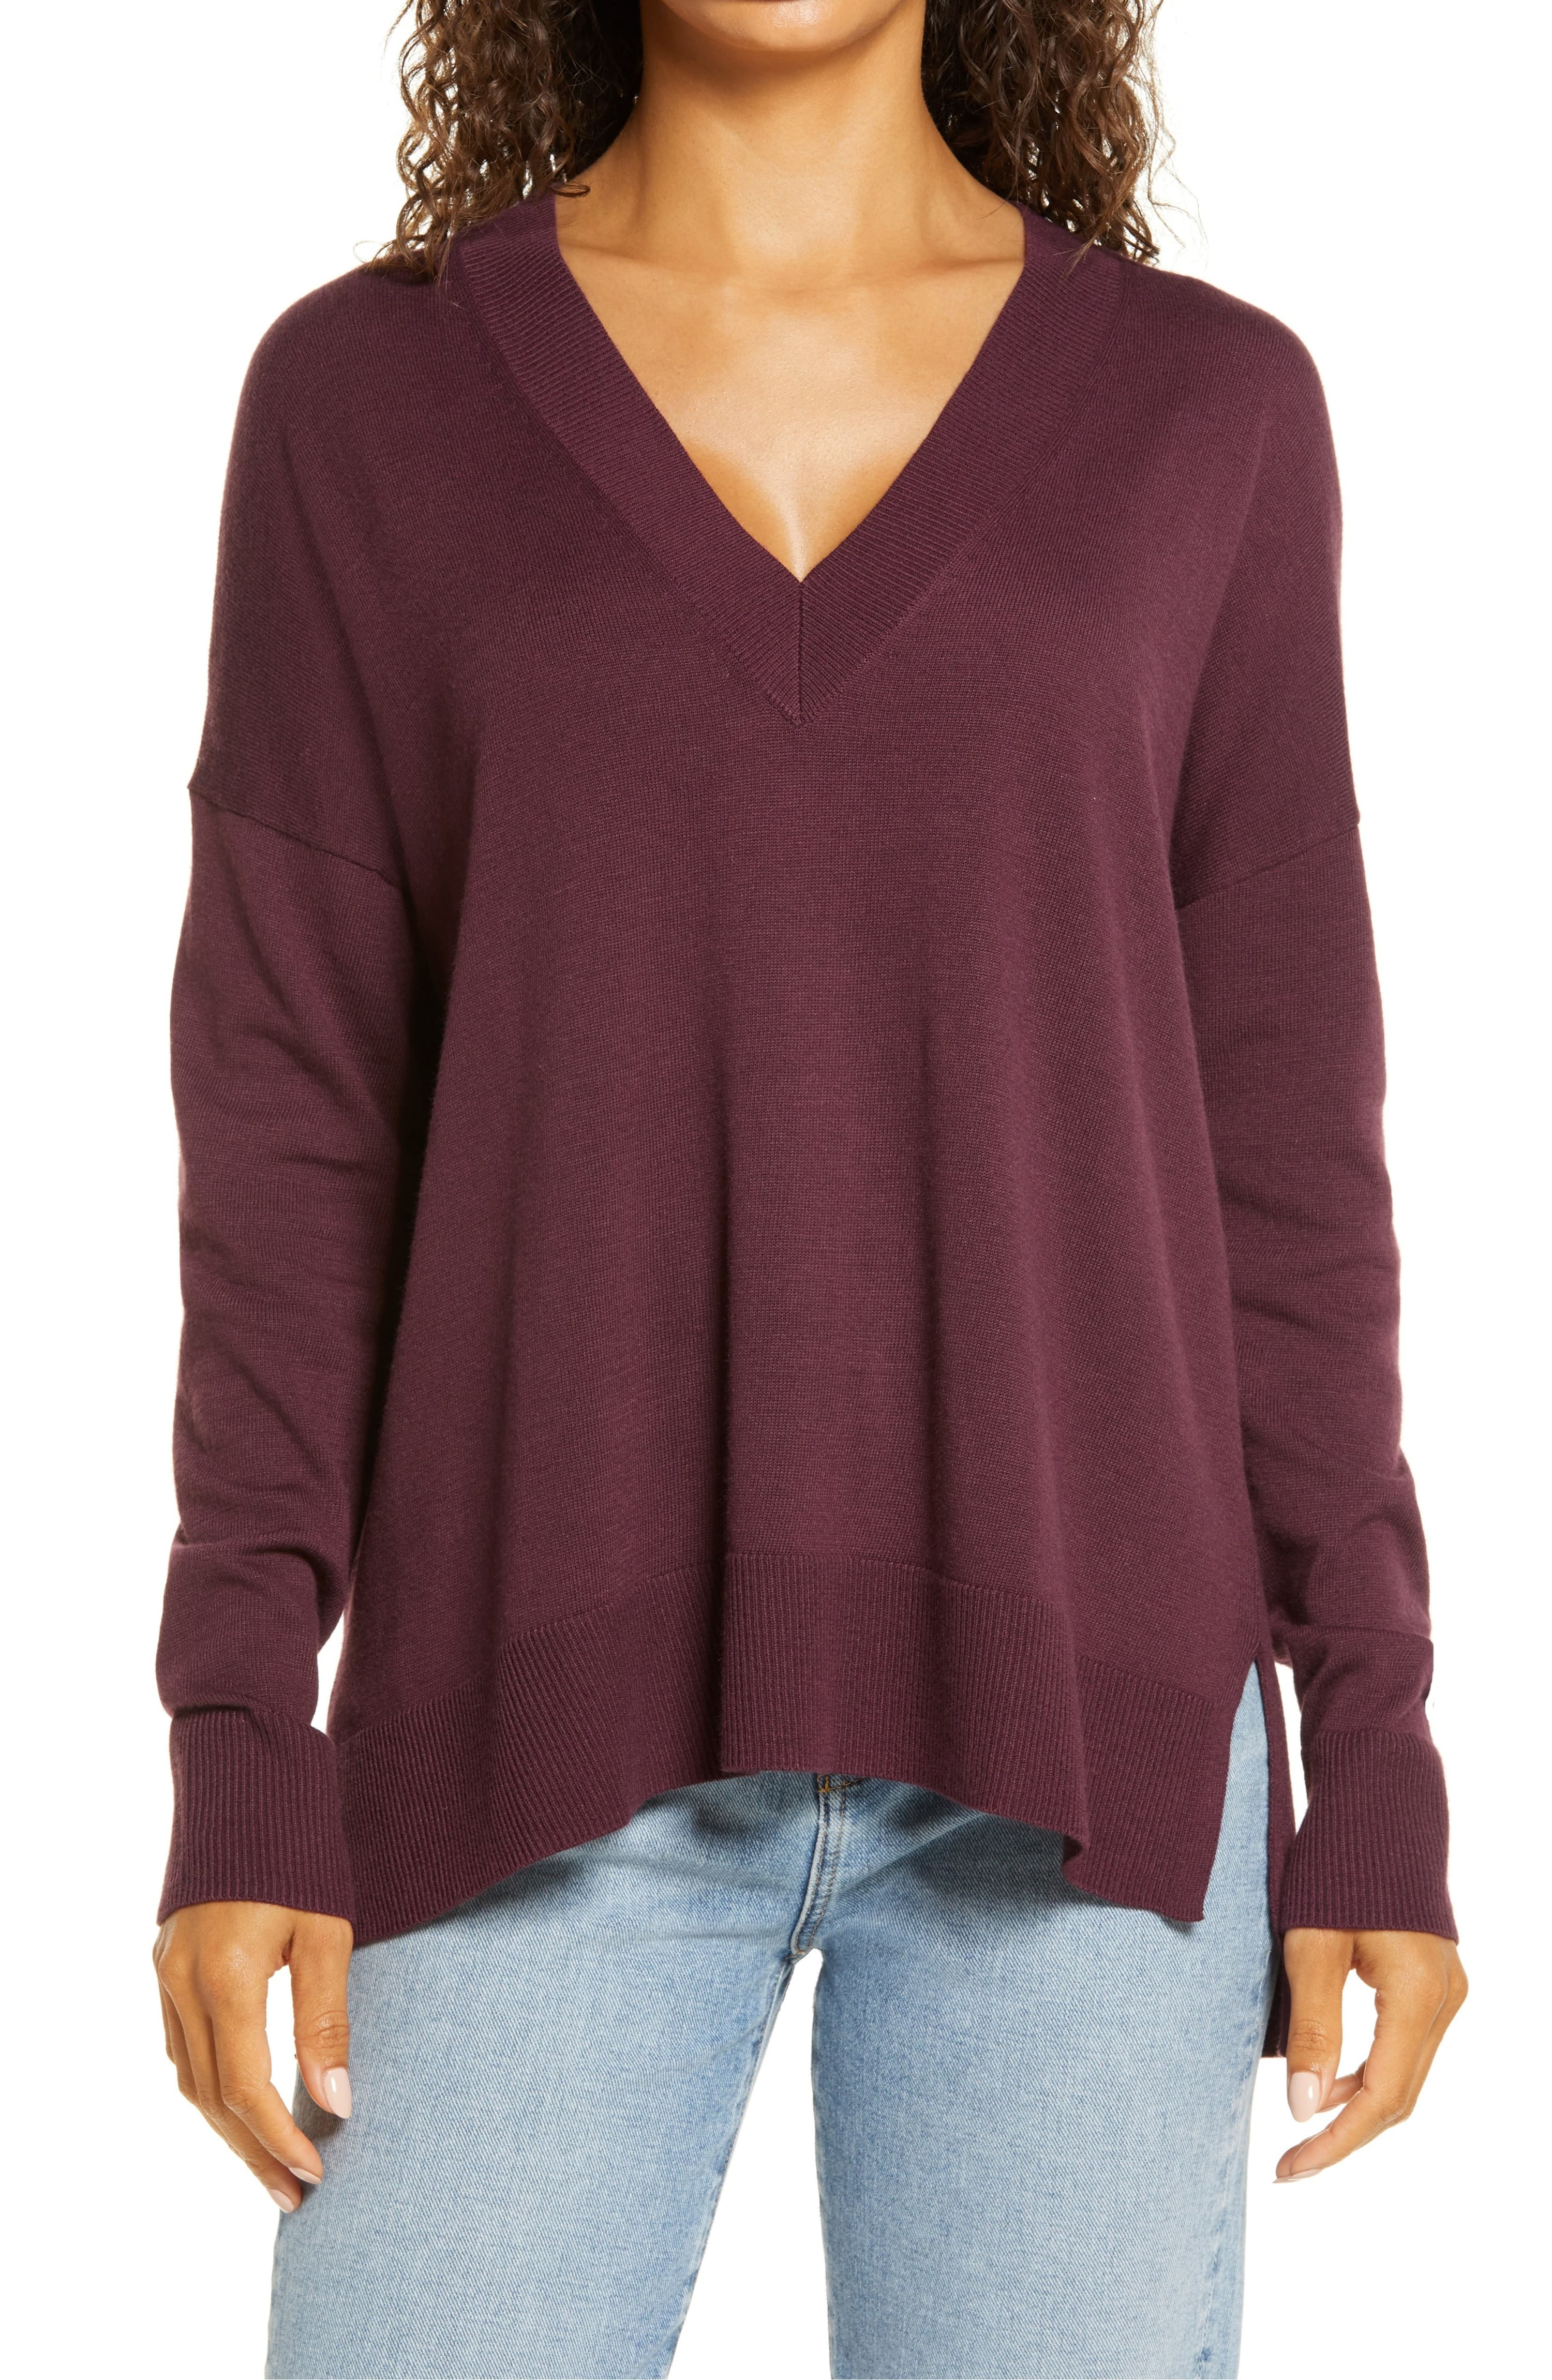 a model in a burgundy high low sweater with a v-neck cut